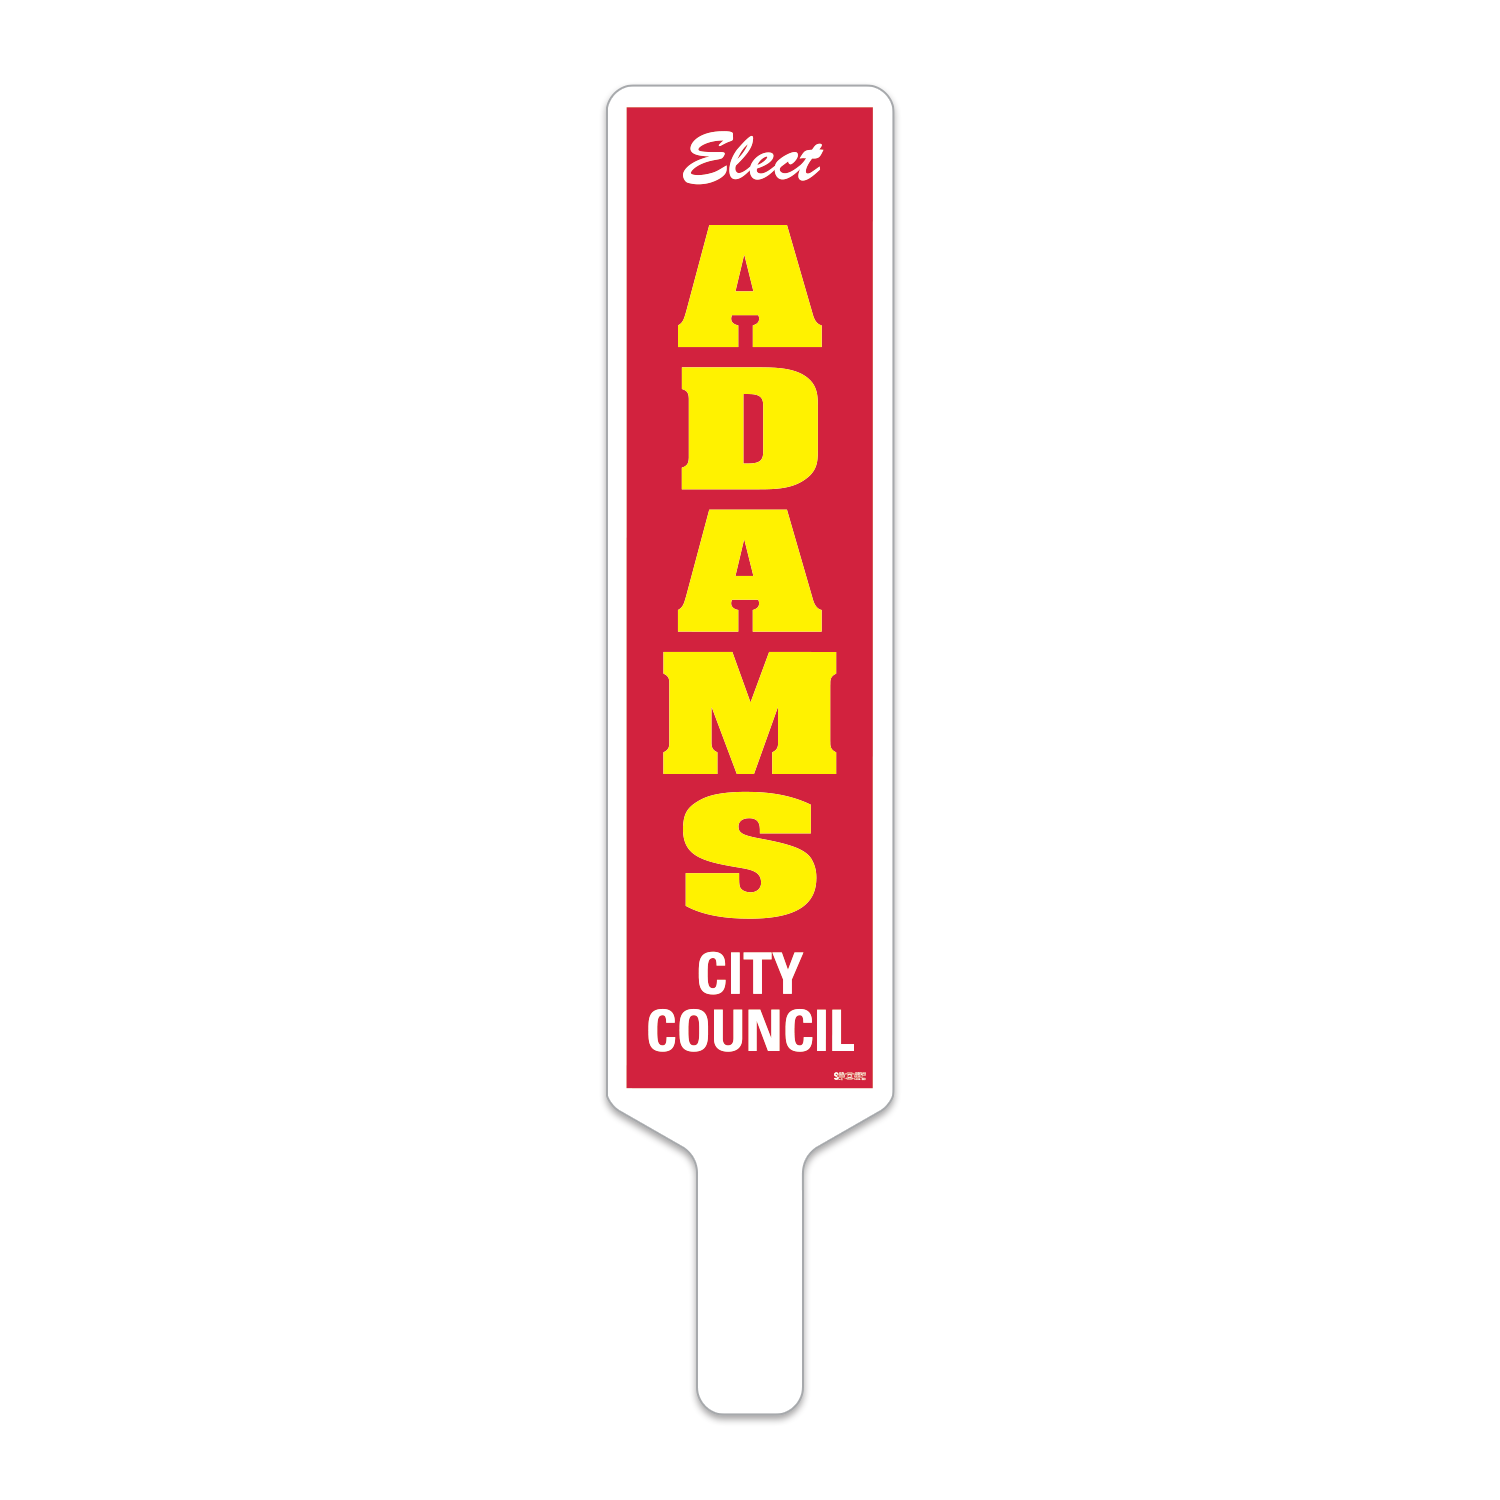 https://www.sswprinting.com/images/products_gallery_images/104431_Elect-Adams-City-Council_hi-res.png